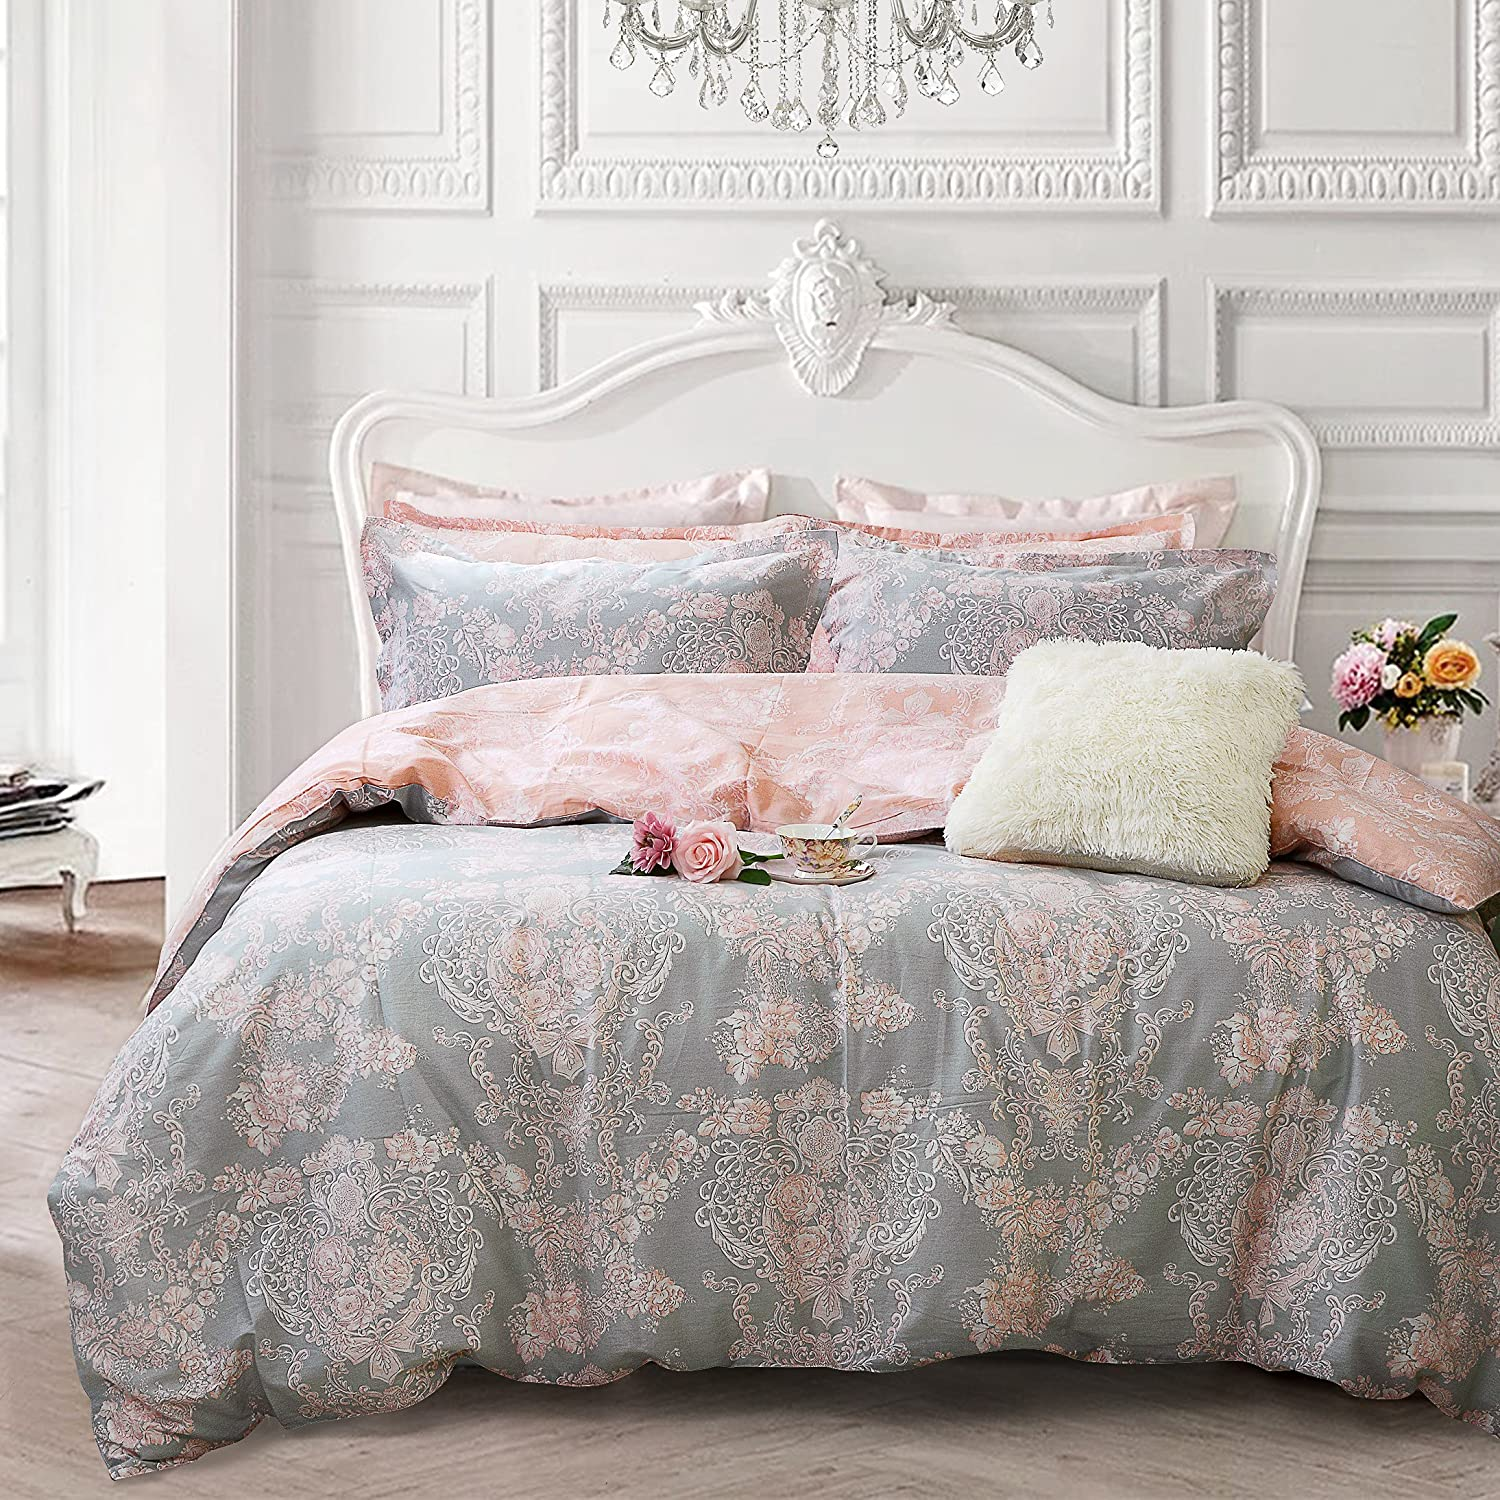 Brandream Blush Pink Bedding Sets Full Size Girls Damask Flo